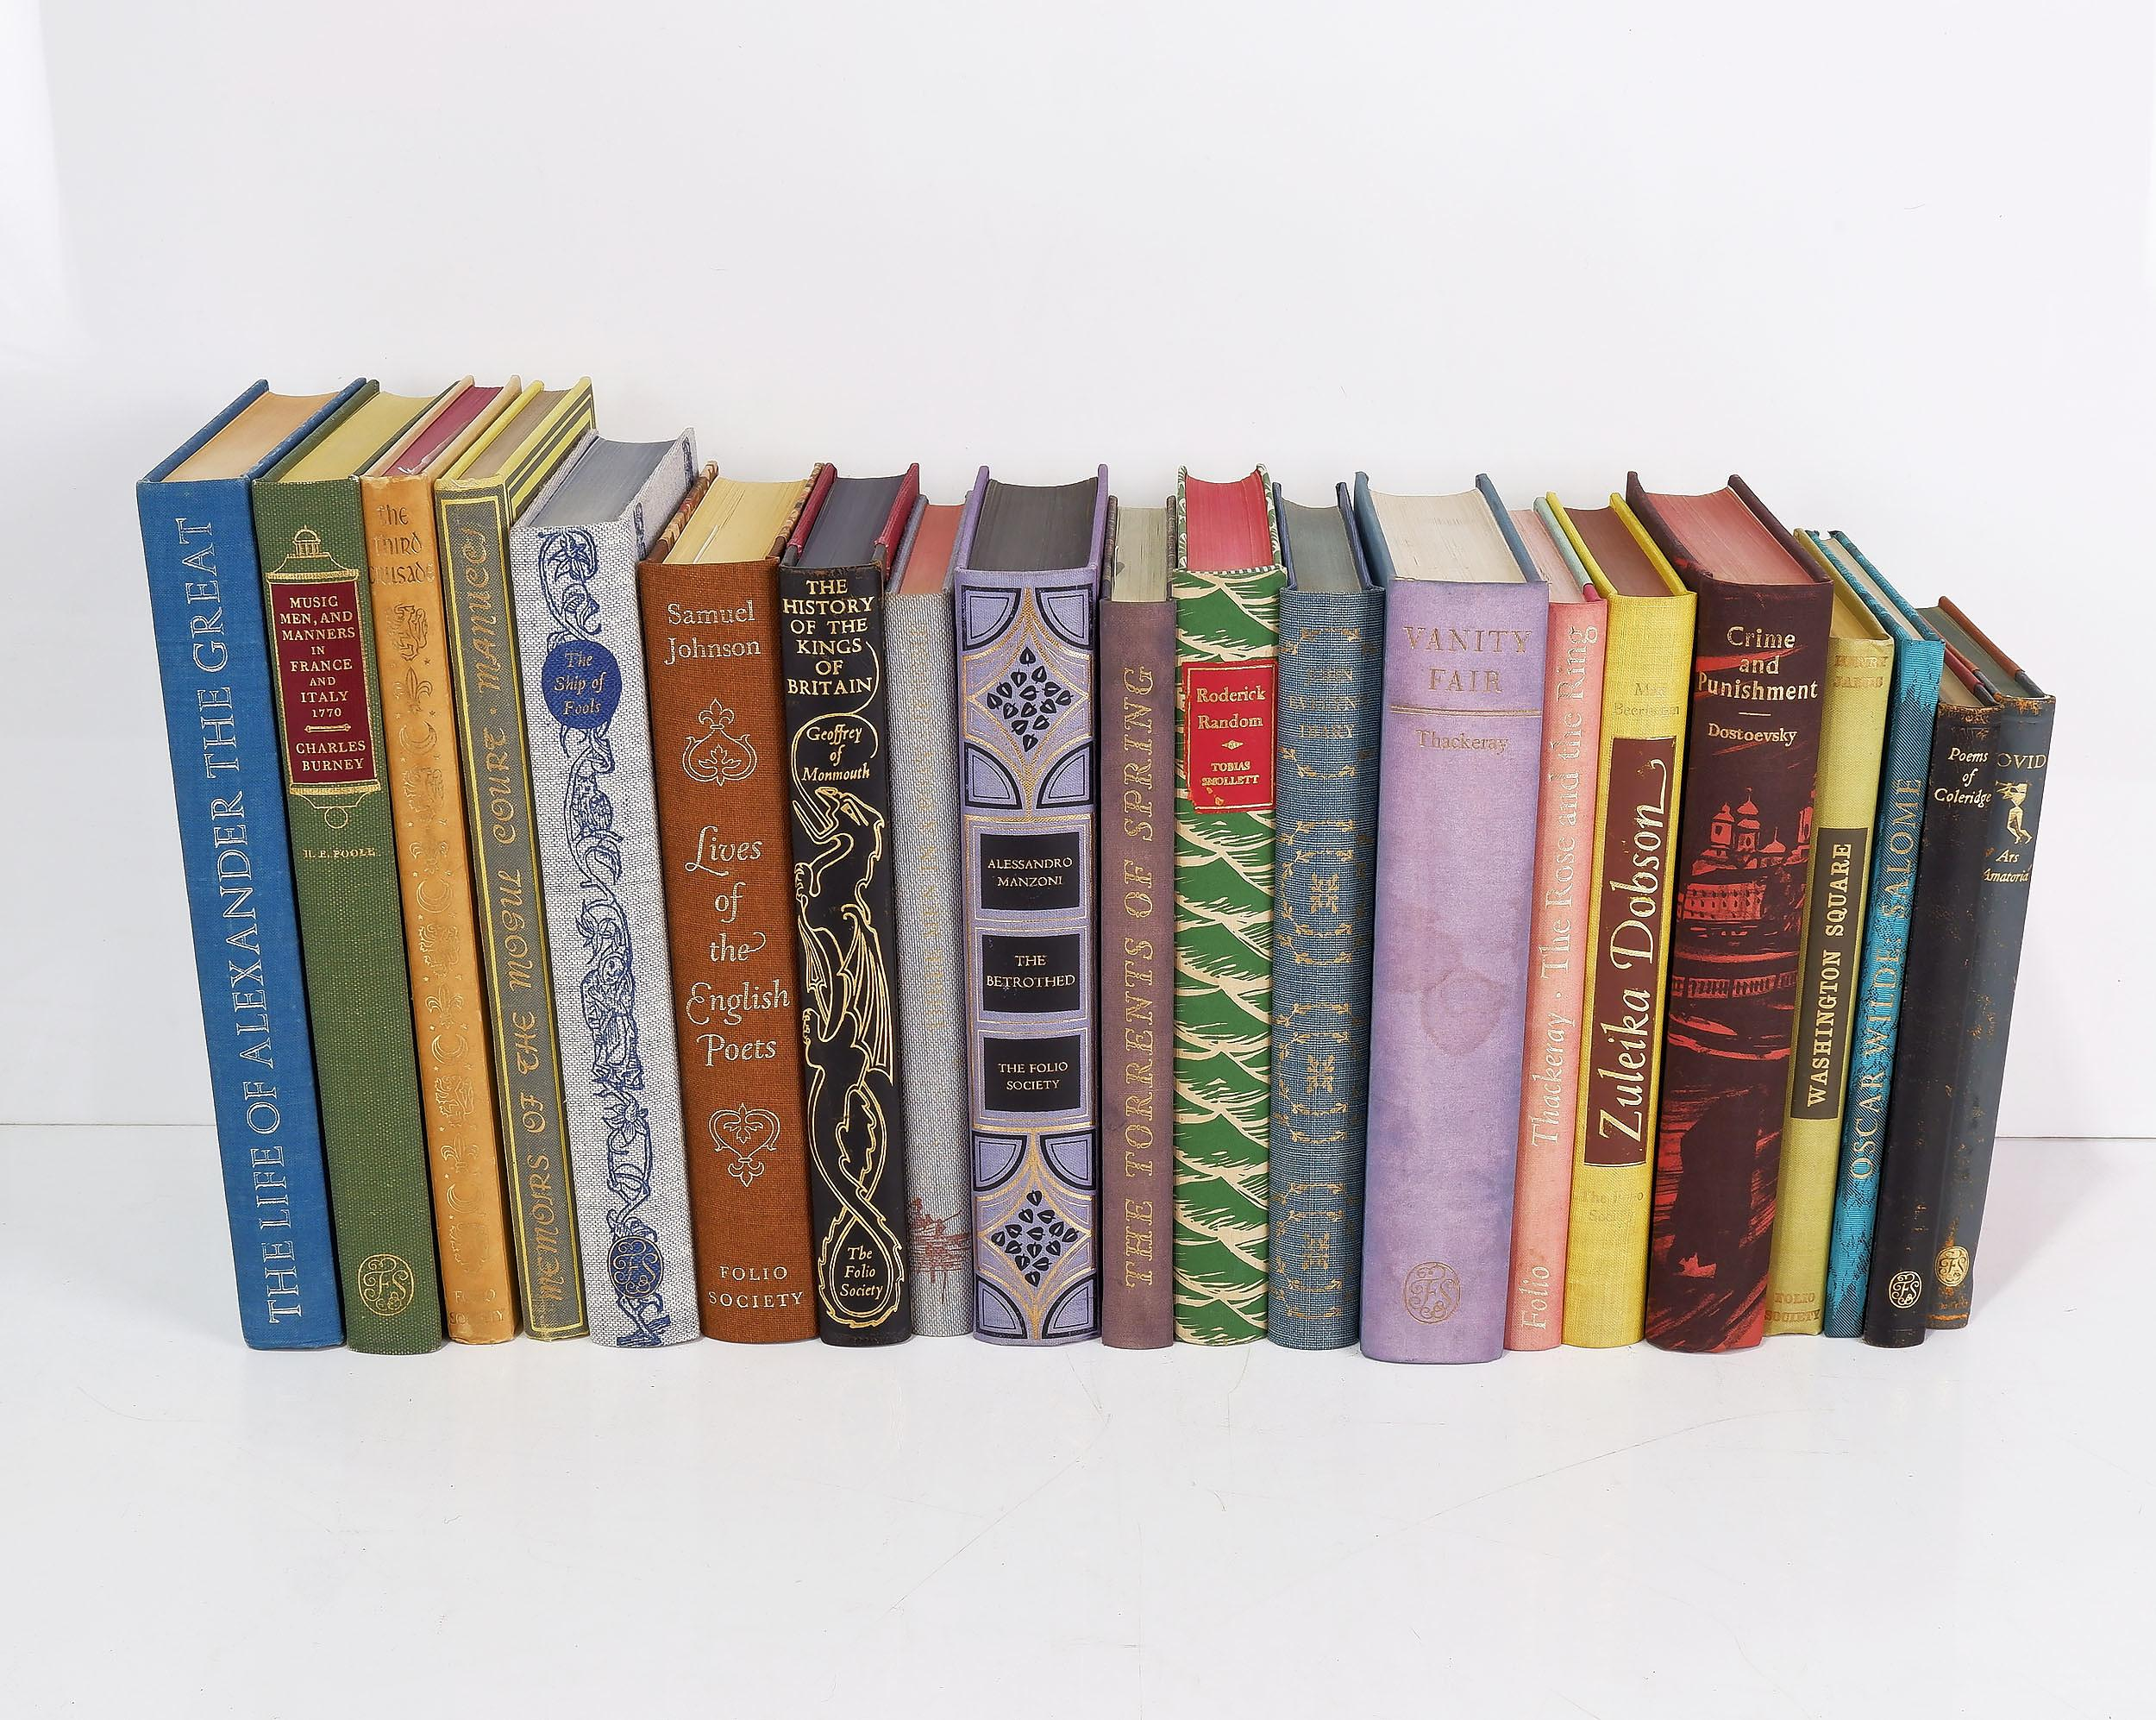 'Twenty Various The Folio Society Books Including The Life of Alexander the Great, Lives of the English Poets, The History of the Kings of Britain and More'